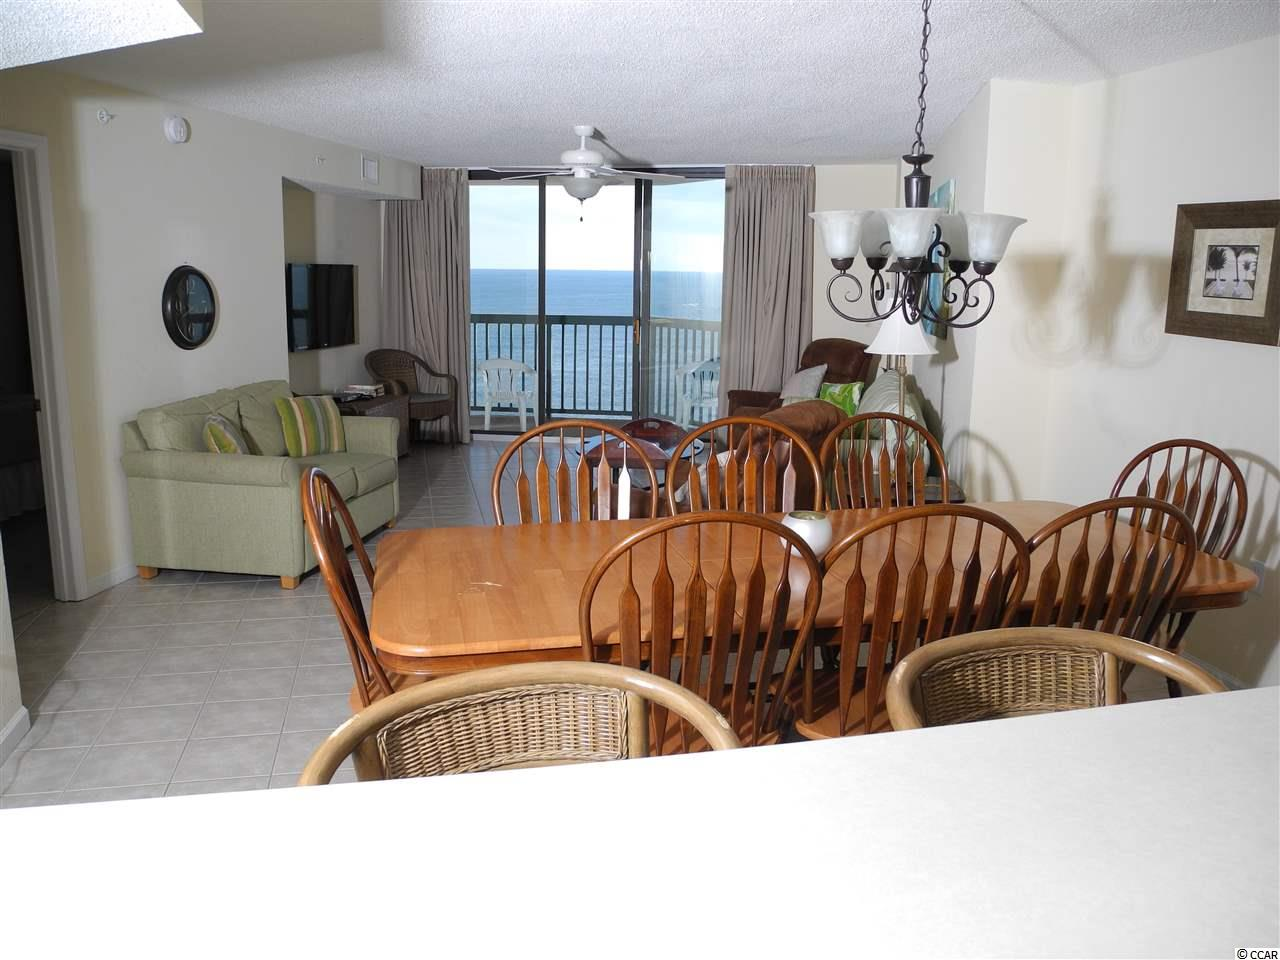 Ocean Bay Club condo for sale in North Myrtle Beach, SC